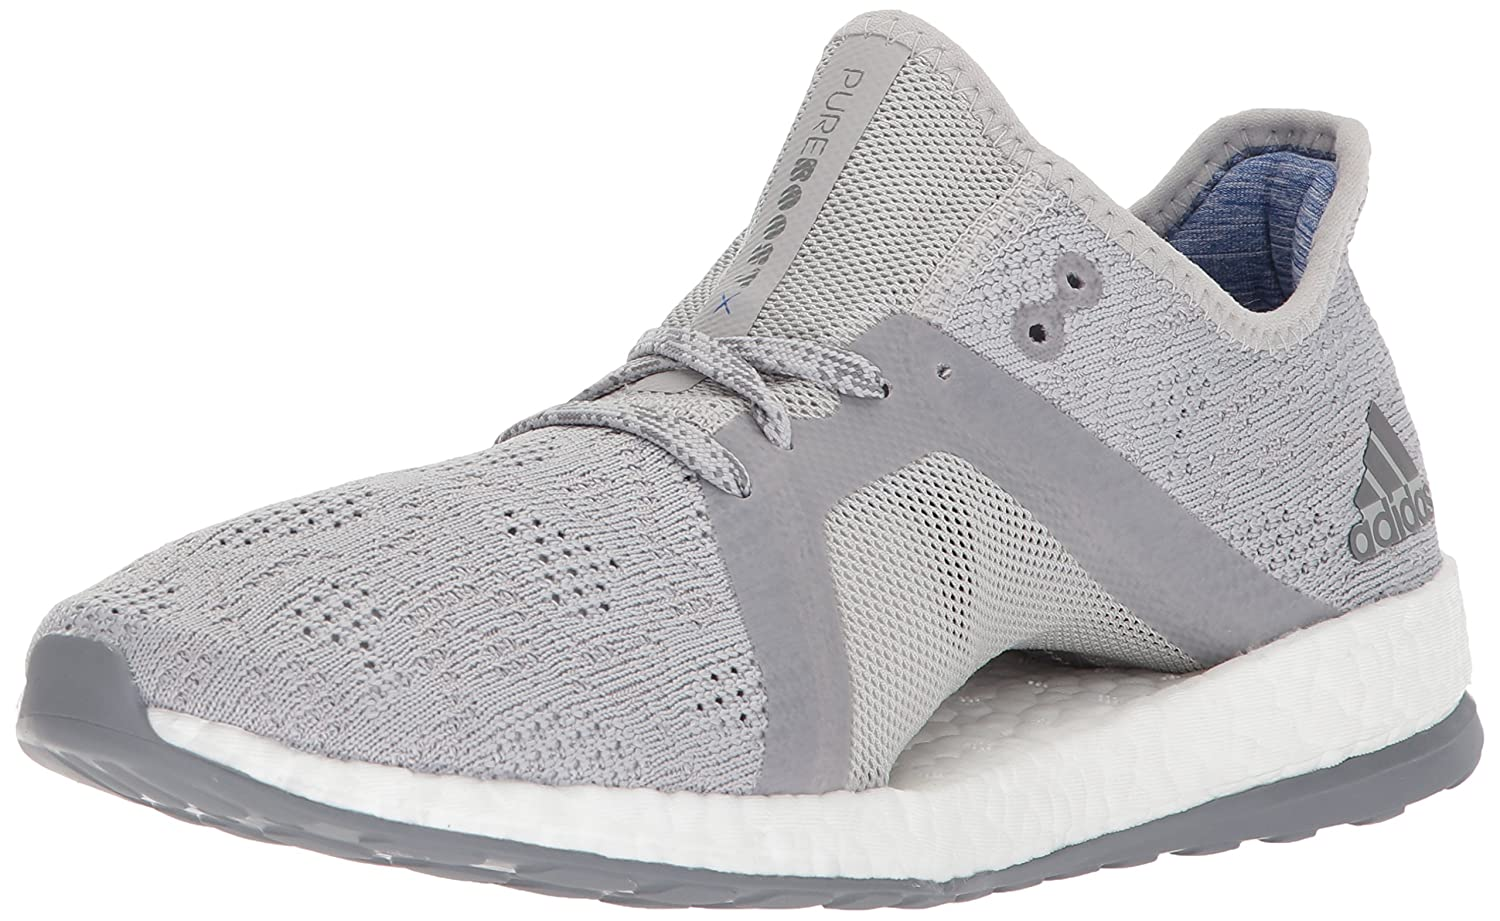 adidas Women's Pureboost X Element Running Shoe B071Z6D3V6 5 B(M) US|Grey Two/Grey Three/Blue